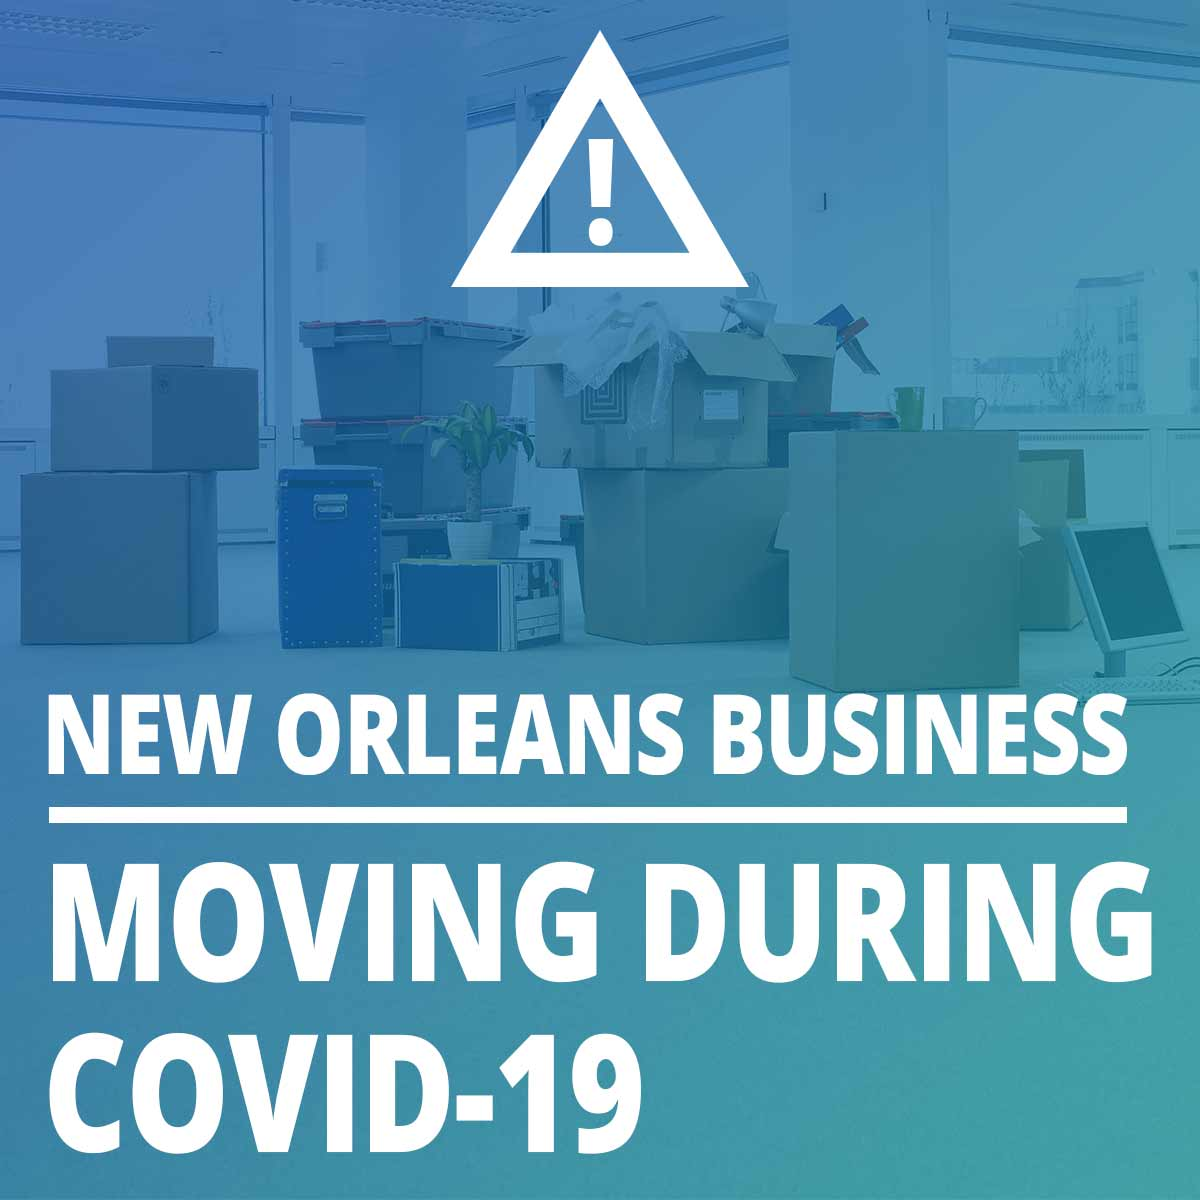 How Can i Move My New Orleans Business During COVID-19